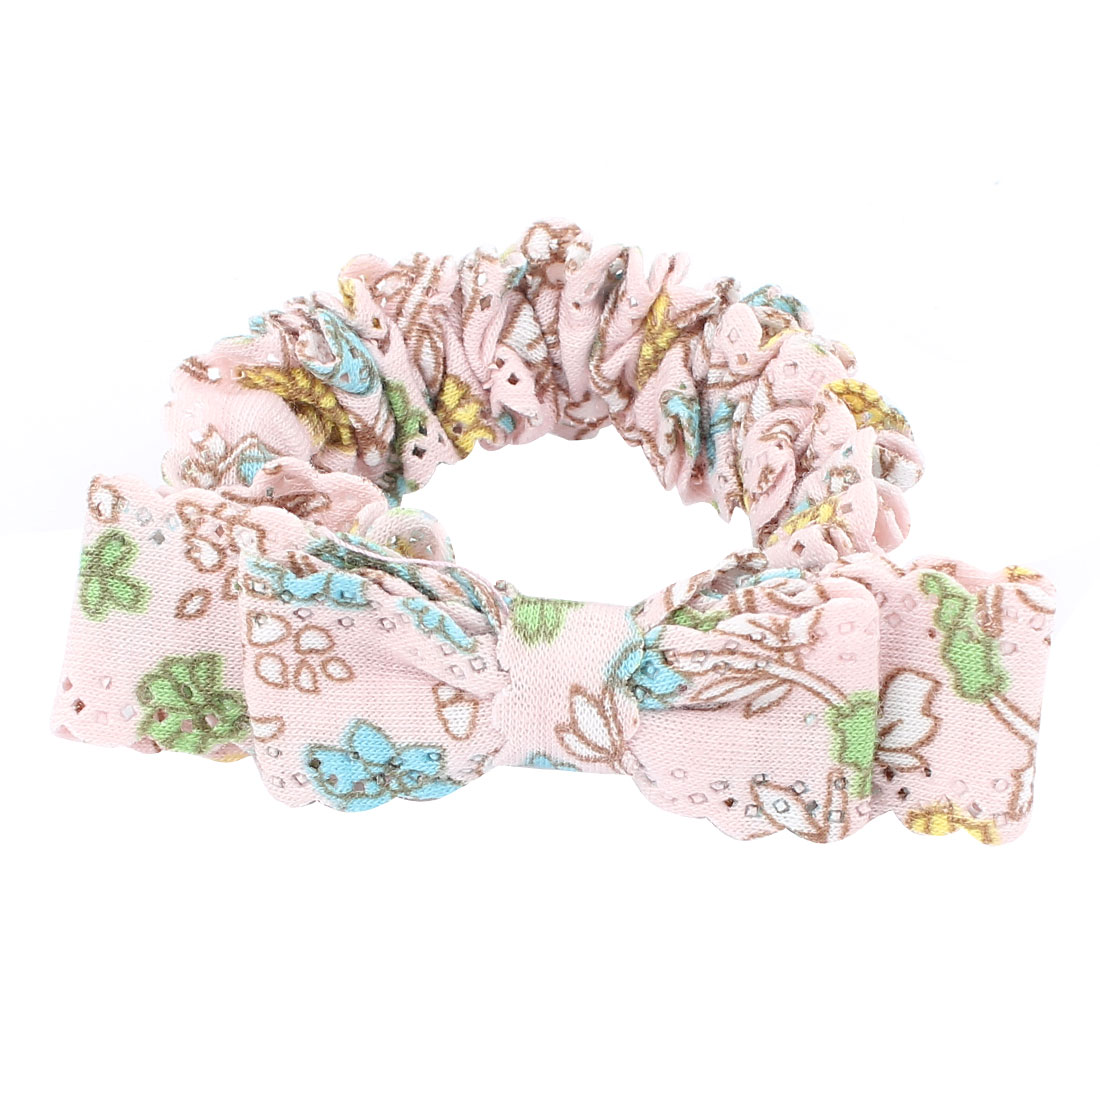 Ladies Hairstyle Floral Print Bowknot Detail Hollow Out Edge Elastic Hairband Hair Tie Ponytail Holder Light Pink